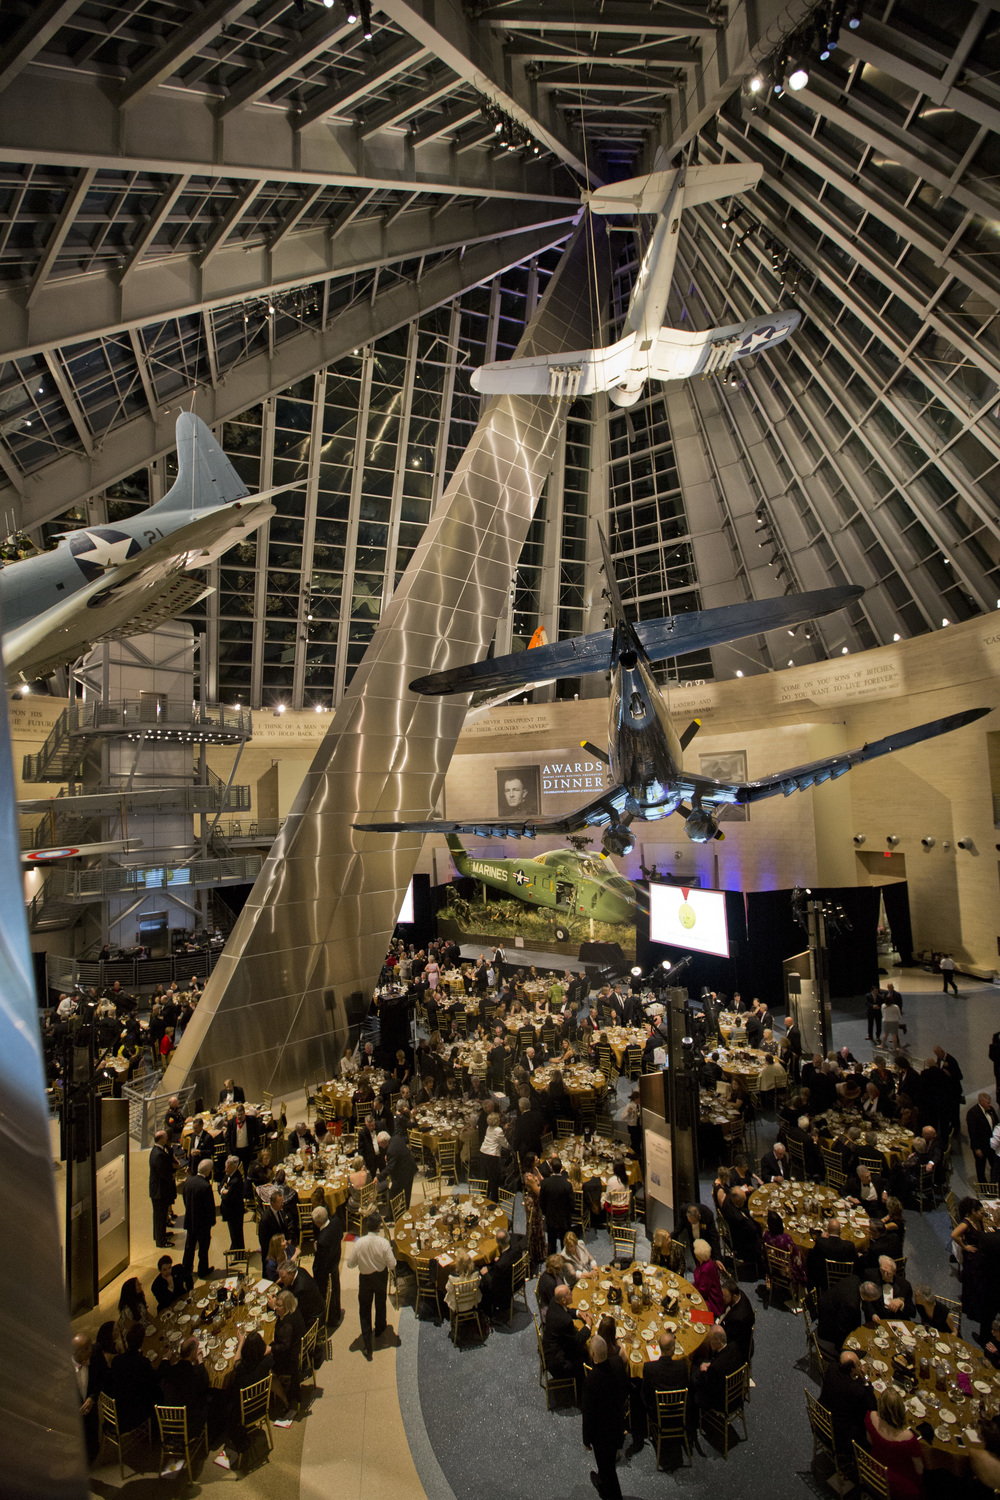 35th Annual Awards dinner at the National Museum of the Marine Corps